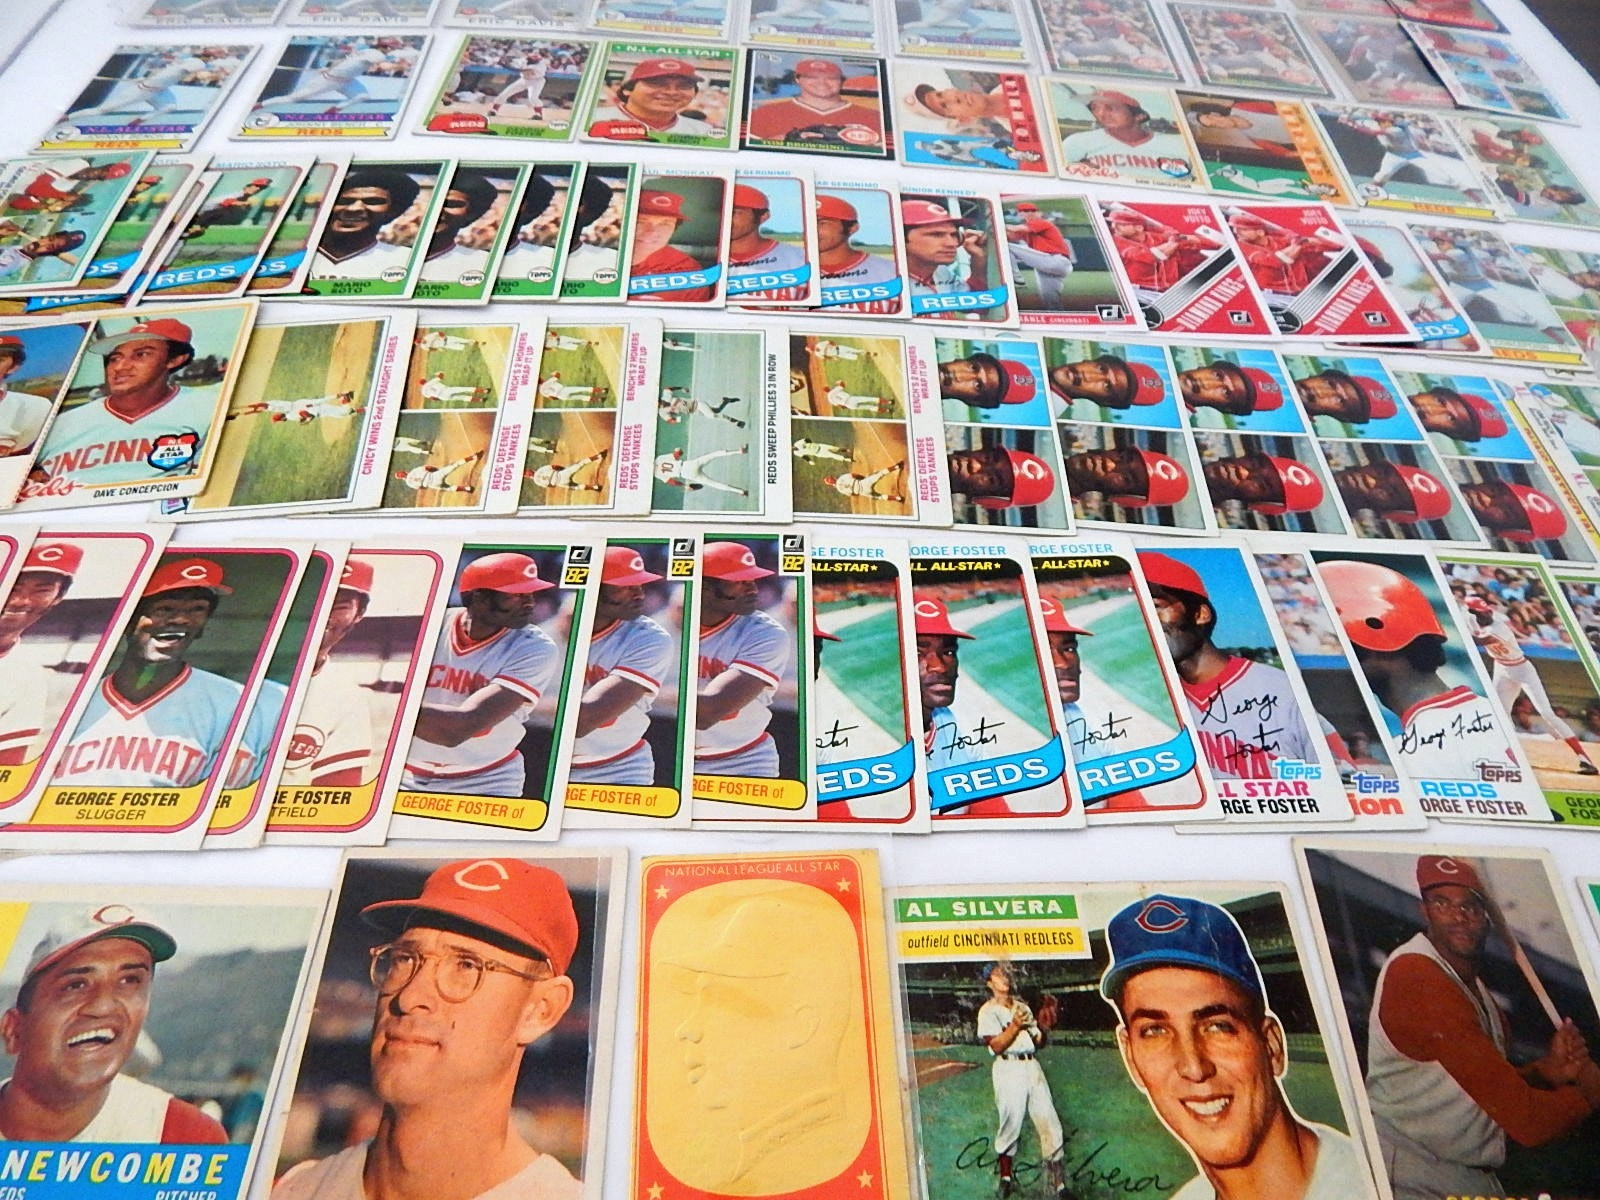 Large Cincinnati Reds Baseball Card Collection from 1950s through 2000